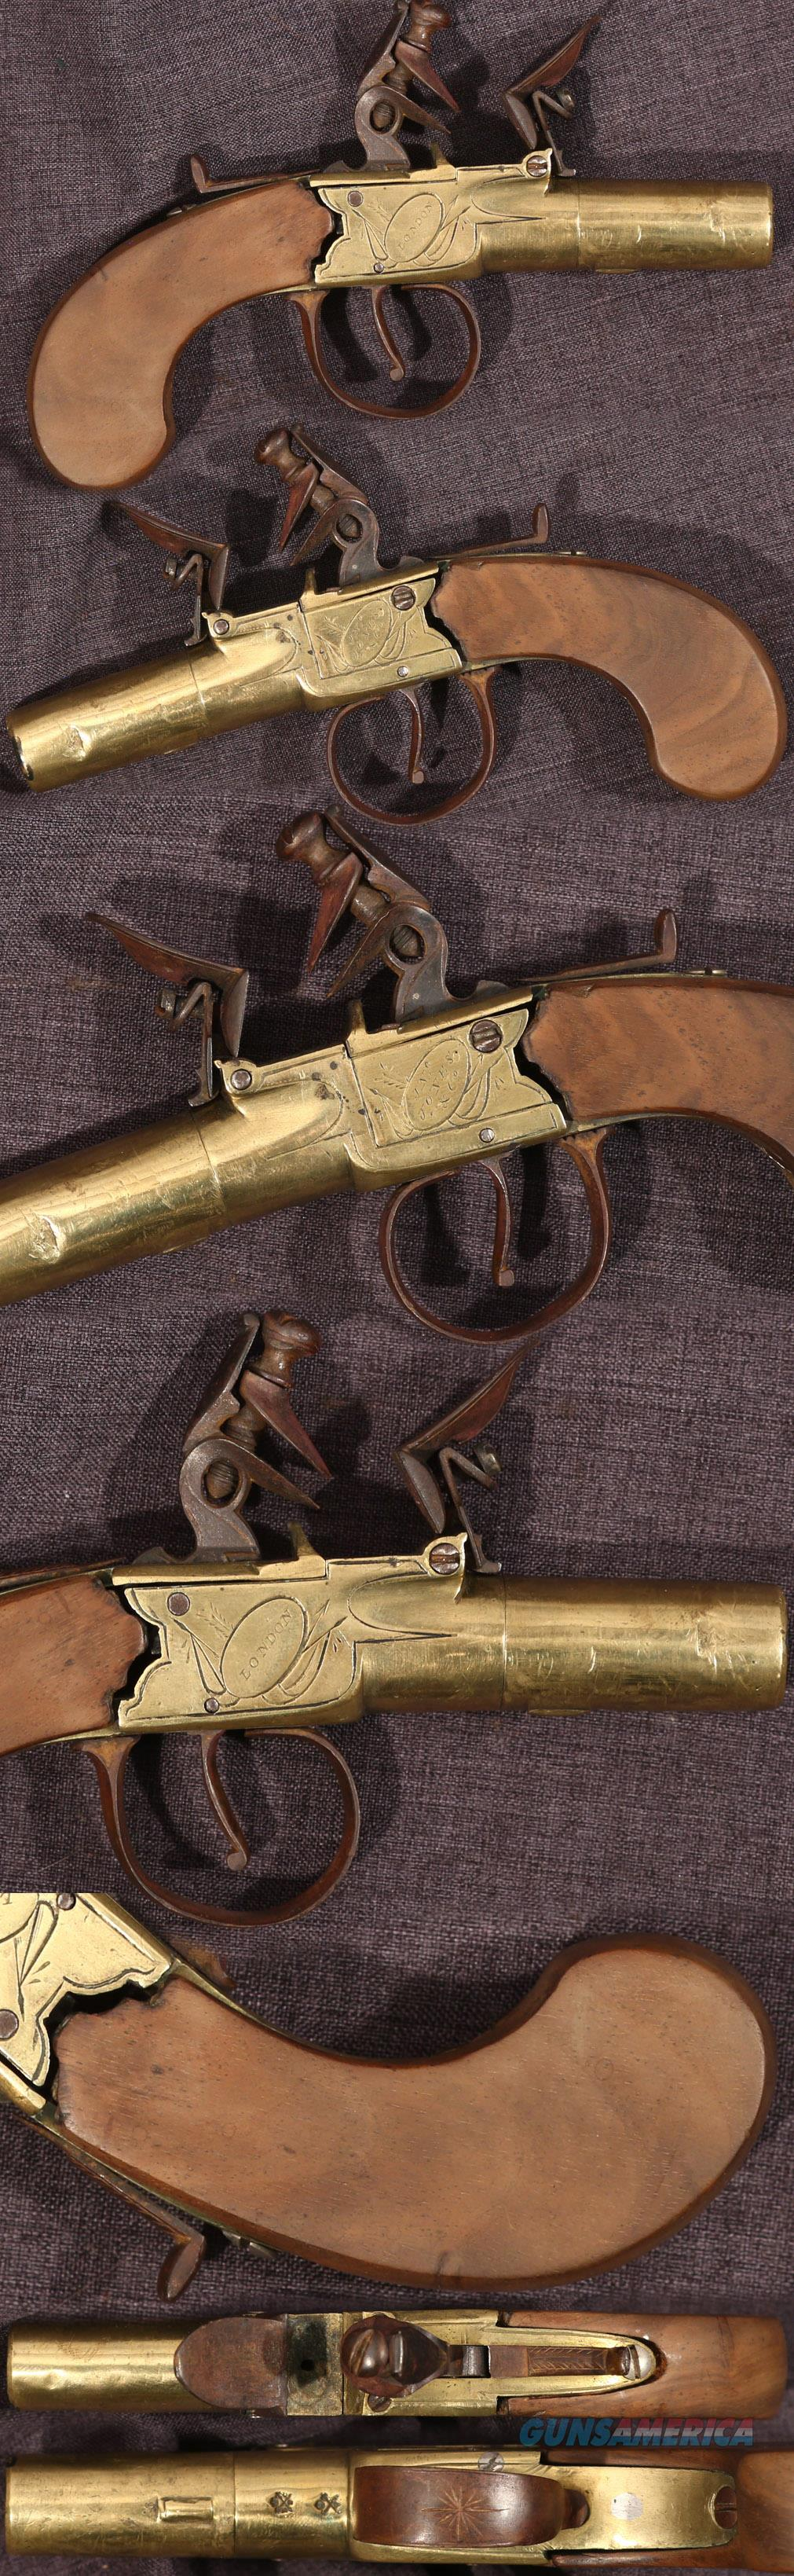 Jones & Co brass flintlock boxlock pistol  Guns > Pistols > Muzzleloading Pre-1899 Pistols (flint)